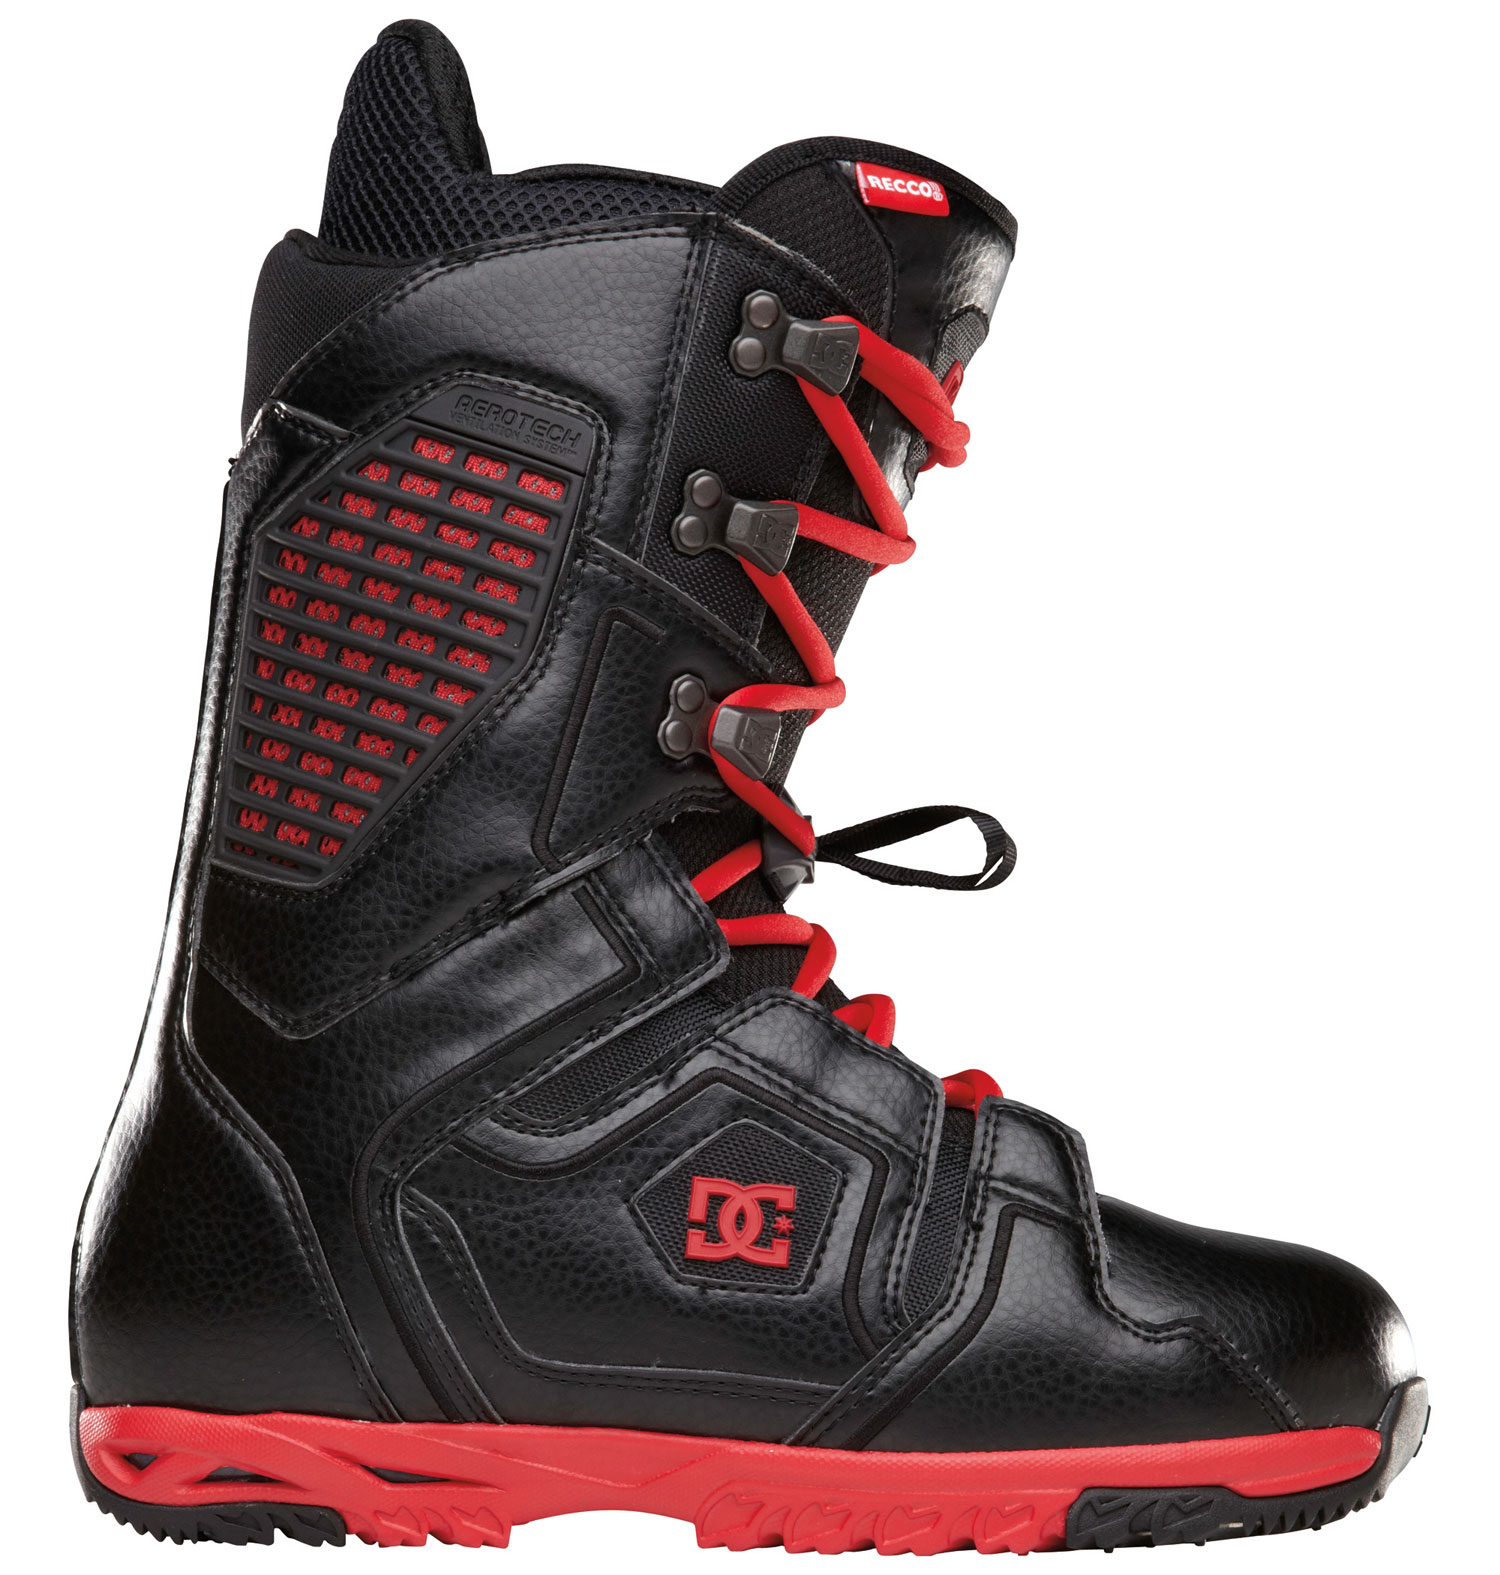 Snowboard Seize the day in a new pair of DC Ceptor Snowboard Boots. Featuring an Alpha Liner with multi-density zones and shock absorbing ImpactG technology, these boots are as comfy as they come. The Aerotech Ventilation System with molded vents in the shell and liner only adds to the luxurious feel of the Ceptor boots for an empowering ride. The boots are rated as level 8 for flex, which allows you to charge into battle with incredible responsiveness to maneuver your way past the competition. If you're looking for a one-of-a-kind comfort and style combo, wield the Ceptors from DC.  Flex: 8   Direct Power Lacing: strategically designed overlays in the boots upper provide more power and leverage for optimal shell closure   WrapLock: wrap Lock hardware prevents your laces from slipping by simply wrapping around the hardware. this can turn your traditional lace boot into a zonal closure system by locking the lace at key points   3D Tongue   Articulation   Molded backstay   Welded Toe Cap   Aerotech Ventilation System: molded vents in the shell and liner work in unison to release unwanted moisture away from the riders foot. This proprietary system will keep your feet warm and dry and prevent bacteria build up   Internal Ankle Harness   UniLite: DC's proprietary outsole technology, UniLite provides traction, durability, dampening and cushioning all while drastically reducing weight. UniLite soles feature distinct traction patterns for ascending, descending and skating around with our Push Zone tread pattern. The snow-shedding traction designs also prevent snow from building up and clogging bindings   ImpactG: For the ultimate in comfort we incorporate ImpactG, our proven impact absorbing system that does not change properties under varied temperatures or climates   Alpha Liner: multi density zones, neoprene ankle strap, aerotech system, aegis, full grain leather collar top on status and terrain models, anatomical j-bars - $162.95